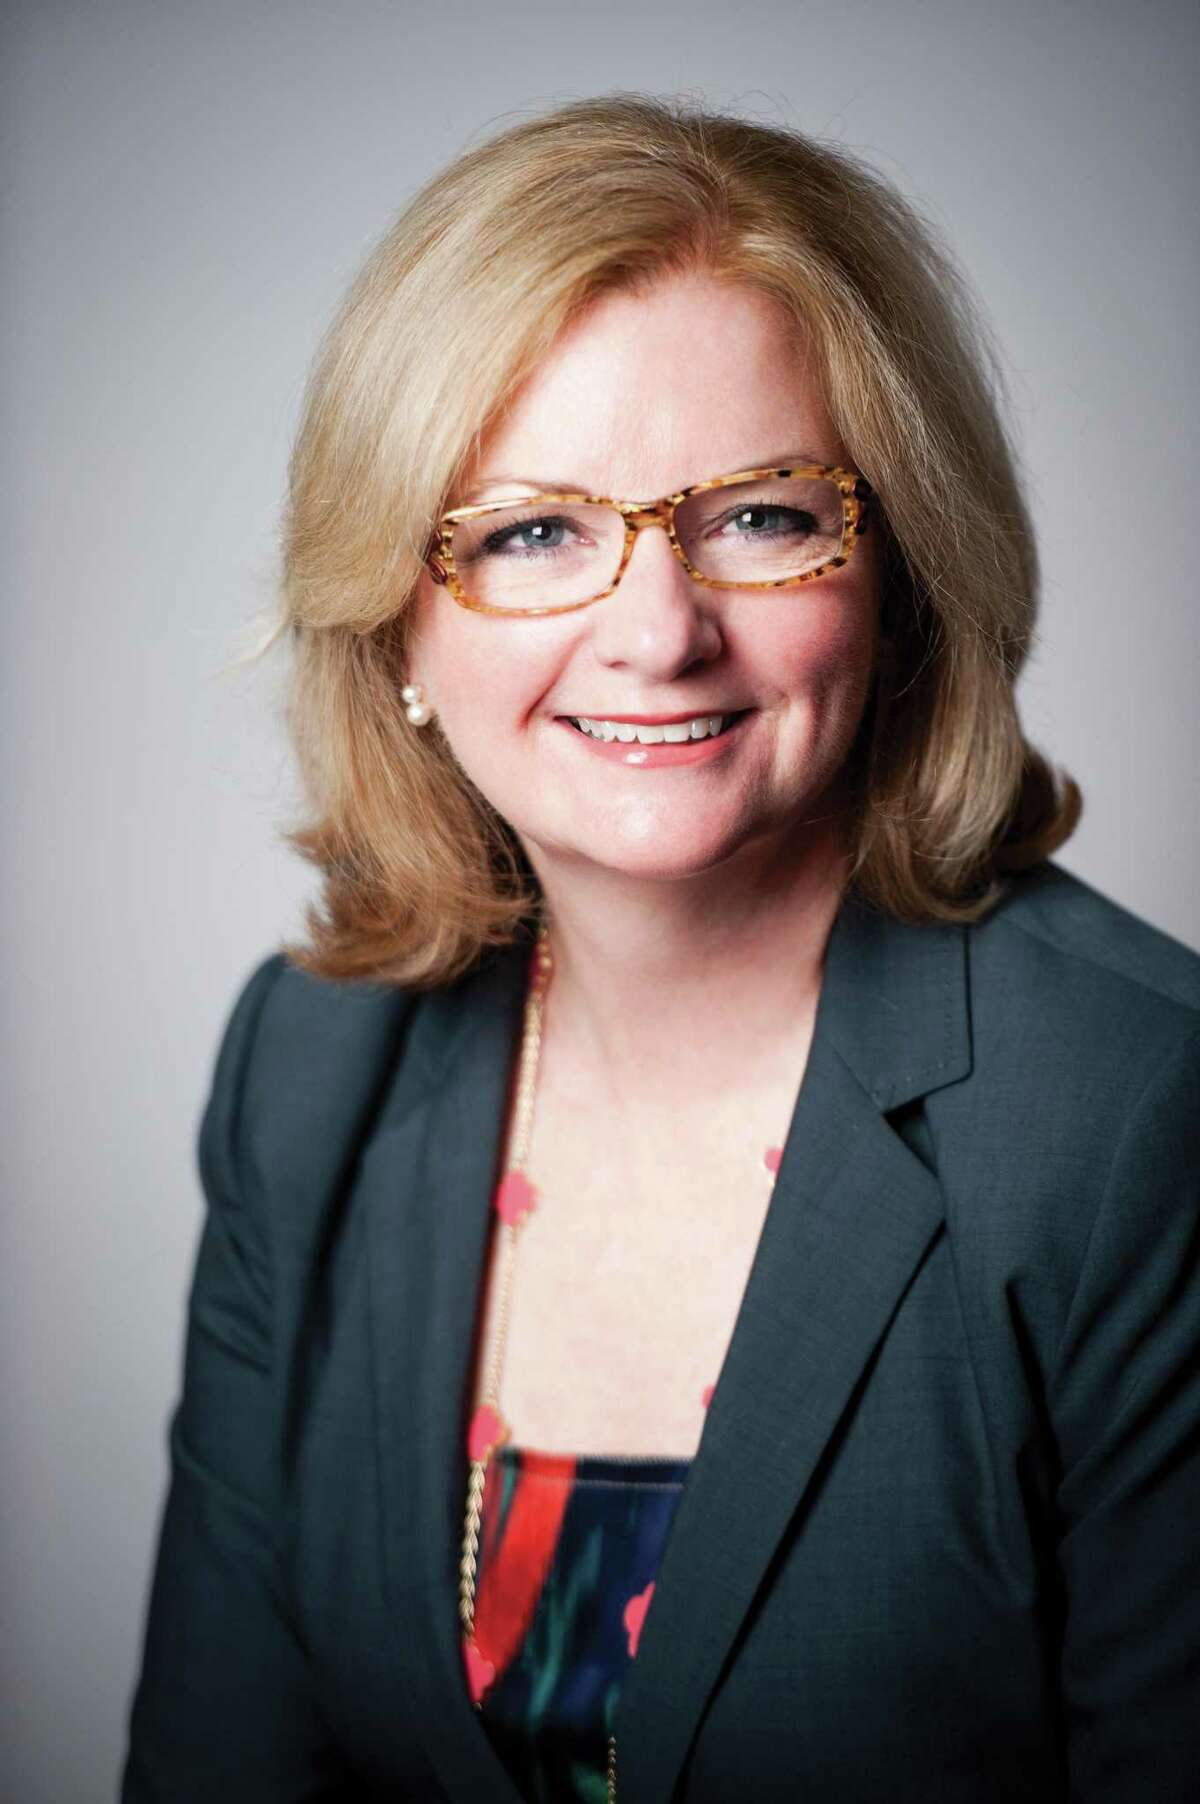 Dr. Dr. Sharon Kiely was recently appointed as Stamford Hospital's Associate Dean of Columbia University Vagelos College of Physicians and Surgeons.